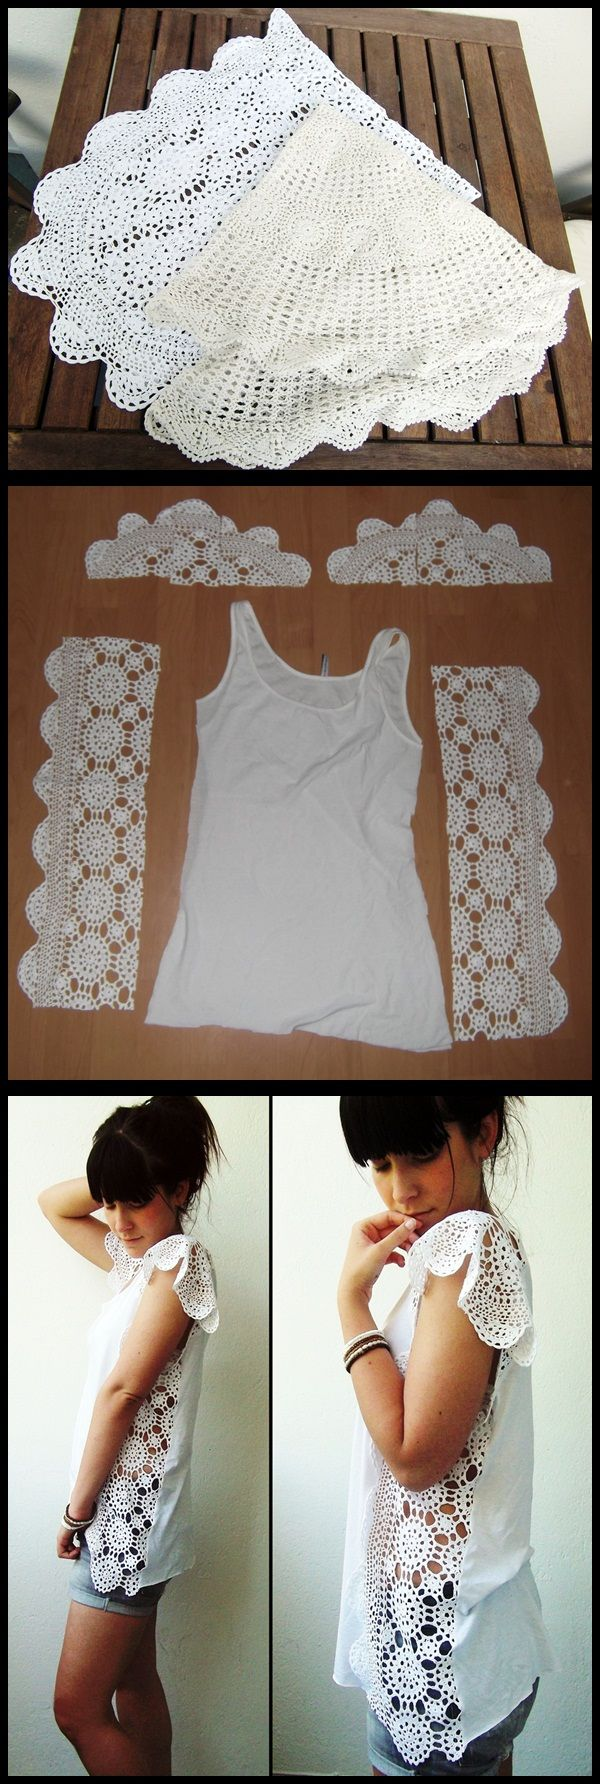 Crochet shirt from www.jestil.blogspot.com